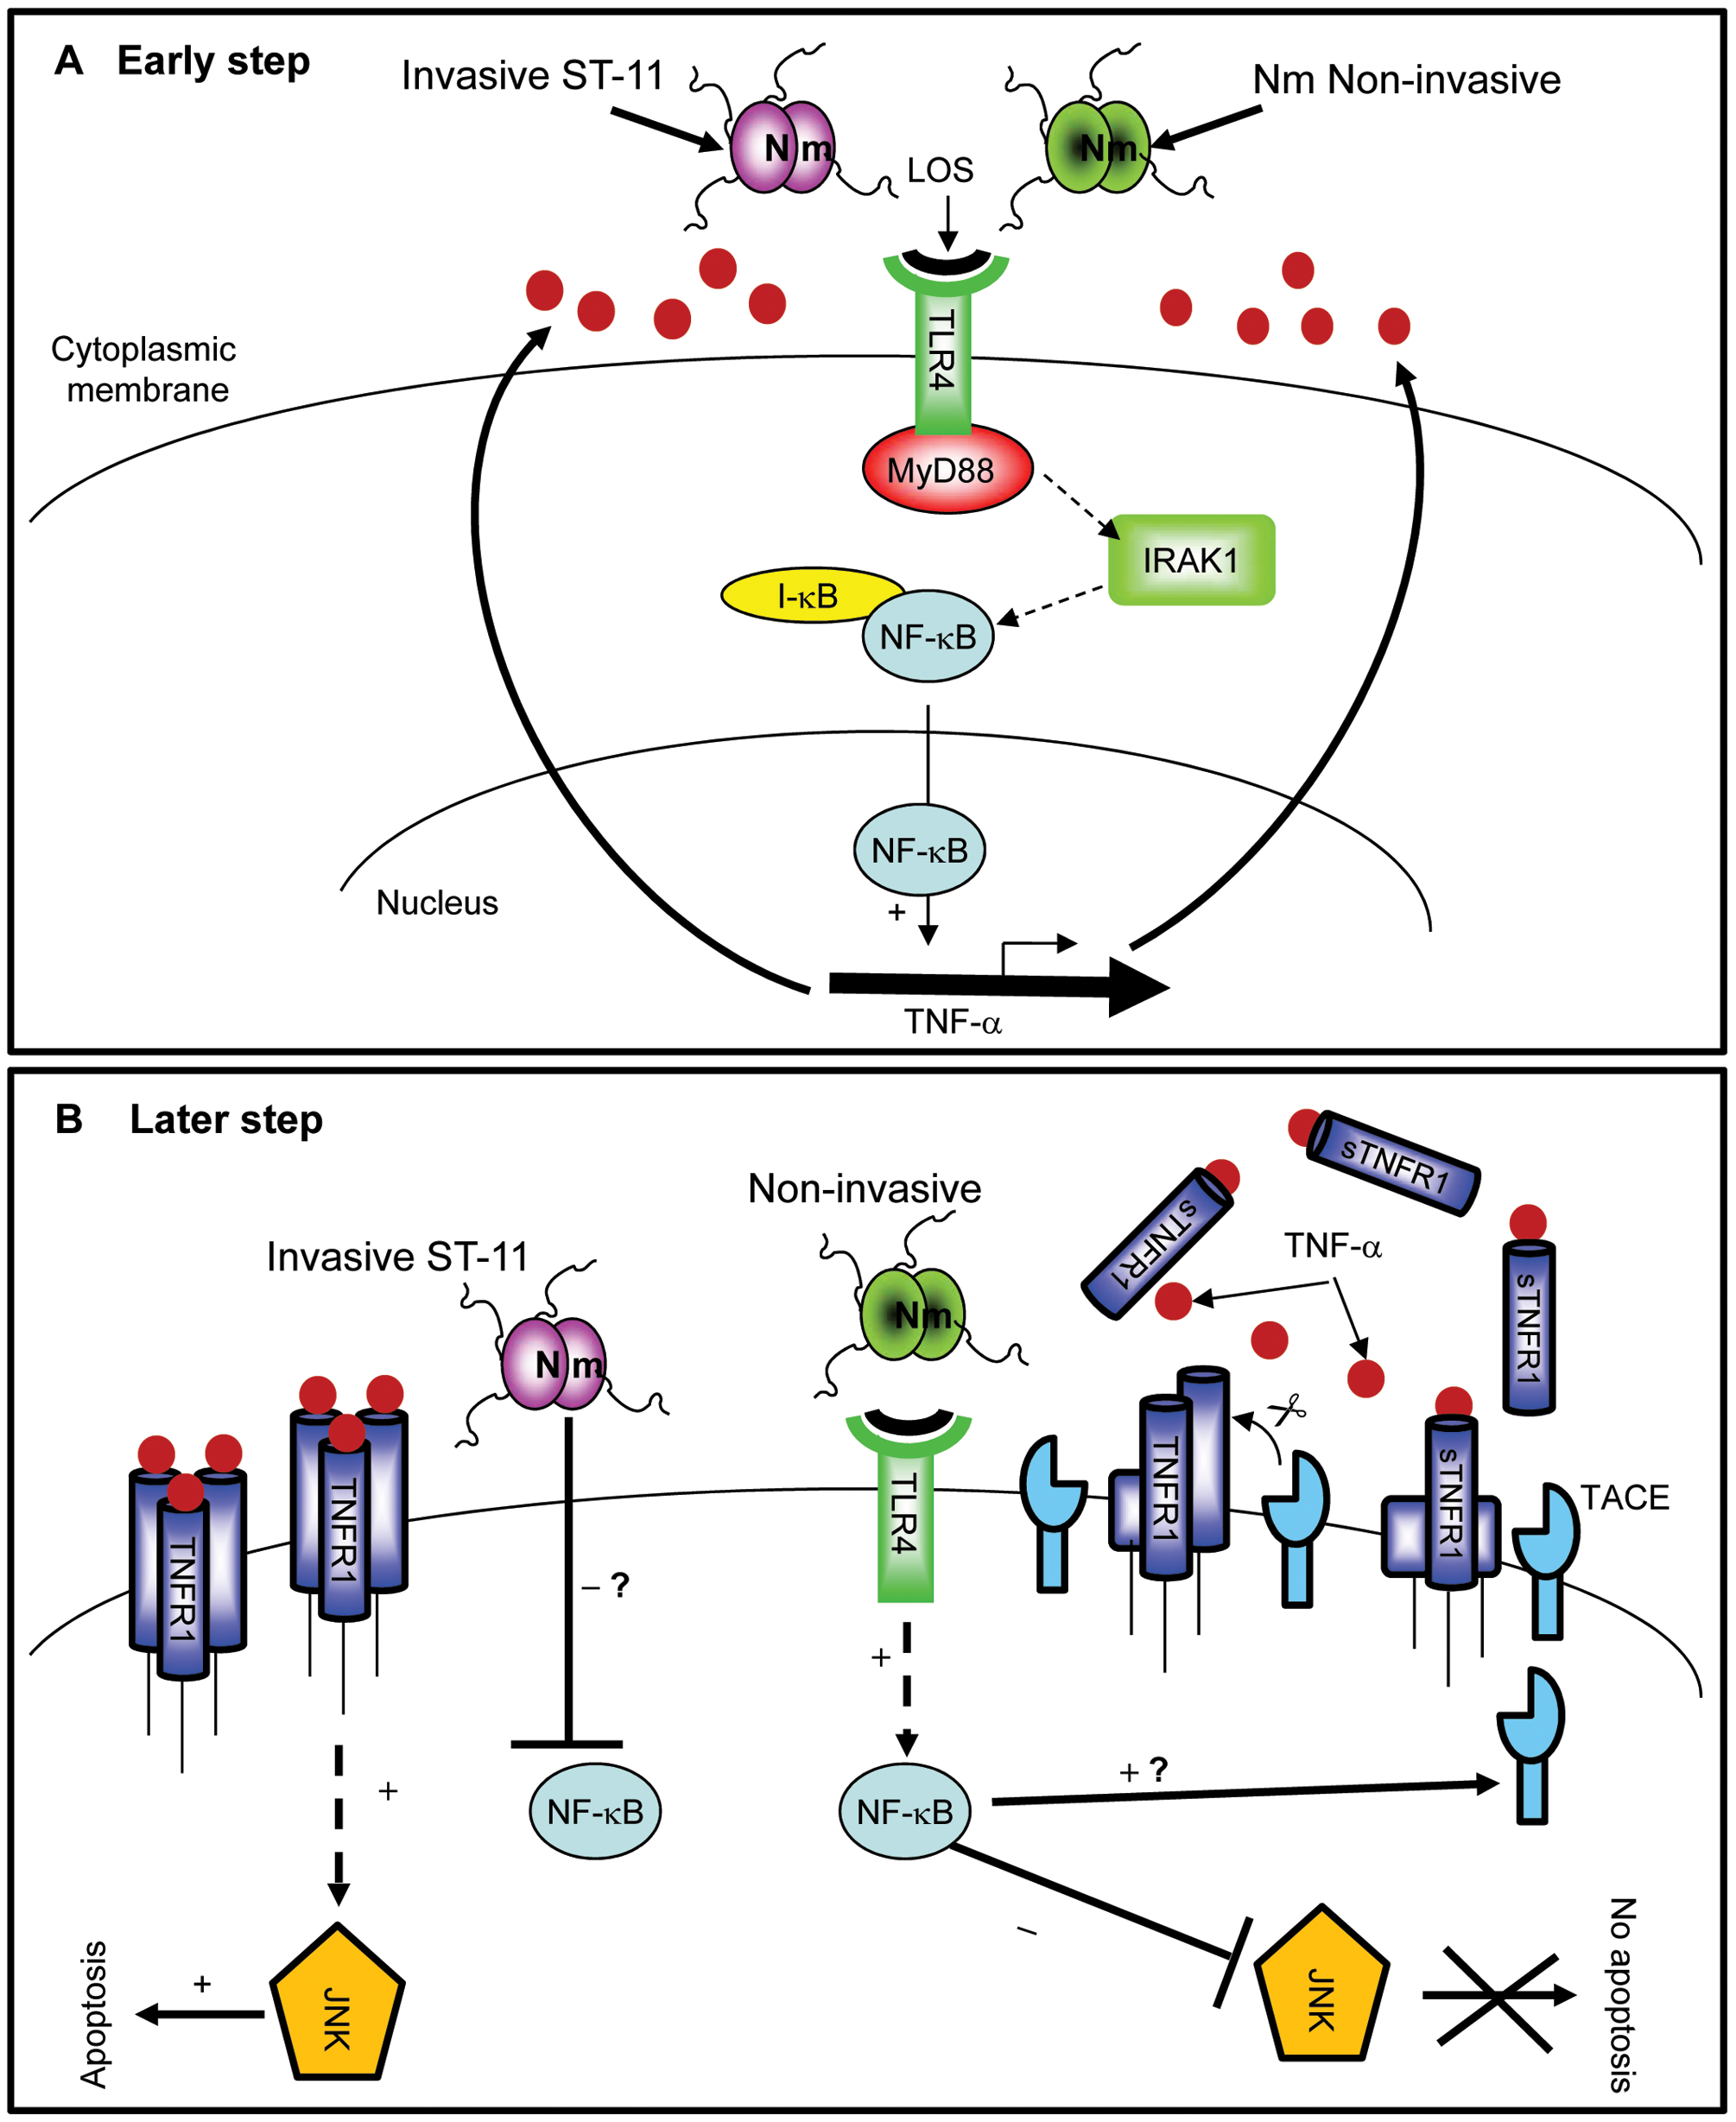 Differential modulation of NF-κB activity by invasive ST-11 and non-invasive carriage isolates leading to cell death and survival of epithelial cells.